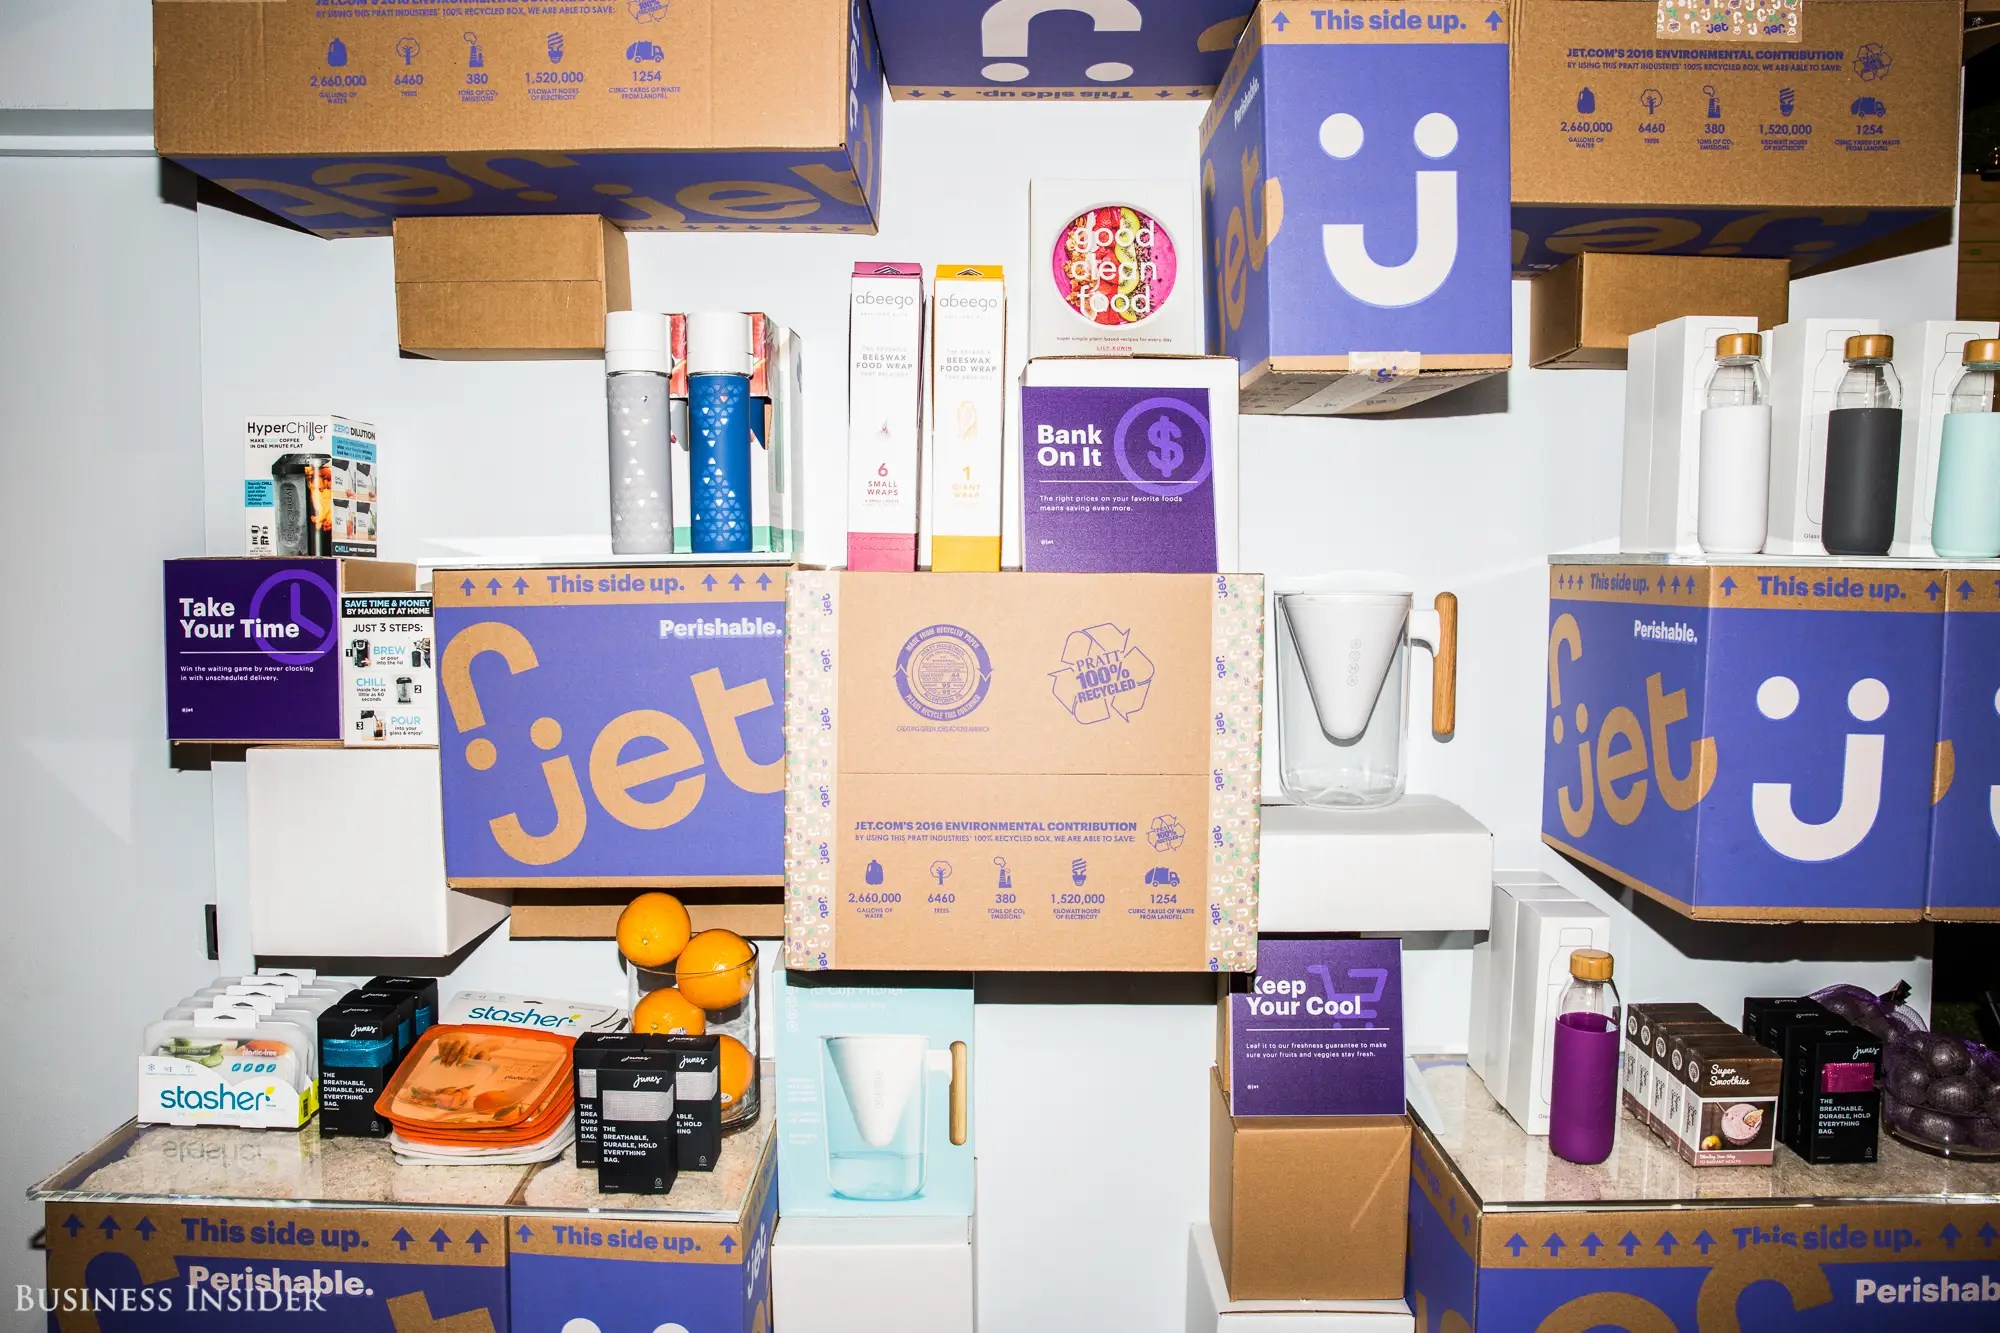 There's even a floor-to-ceiling installation of Jet boxes, which brings its delivery experience to life.